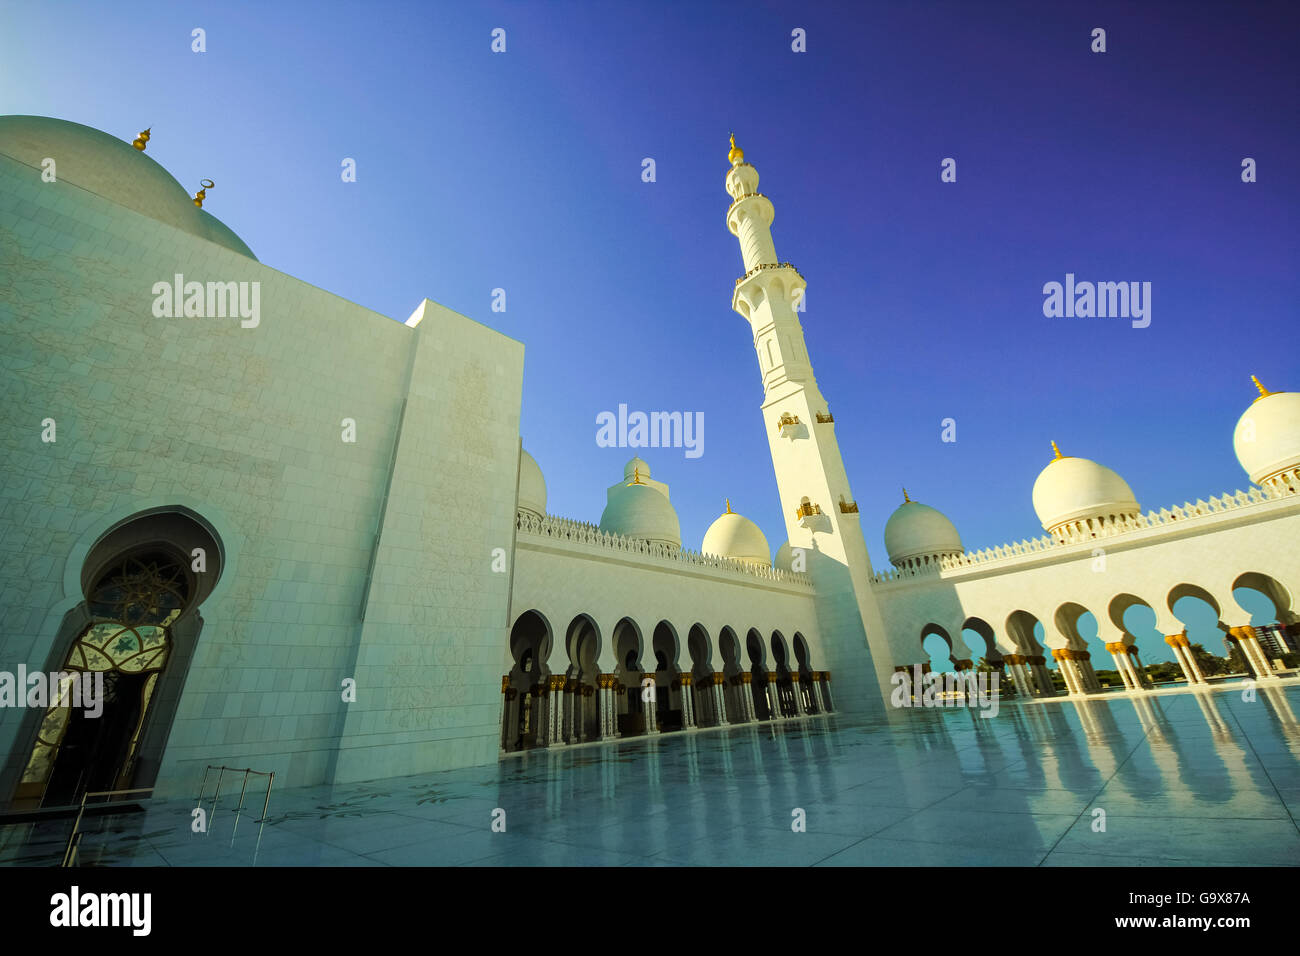 Sheikh Zayed Bin Sultan Al Nahyan Mosque at dusk, Abu Dhabi, United Arab Emirates, Middle East - Stock Image